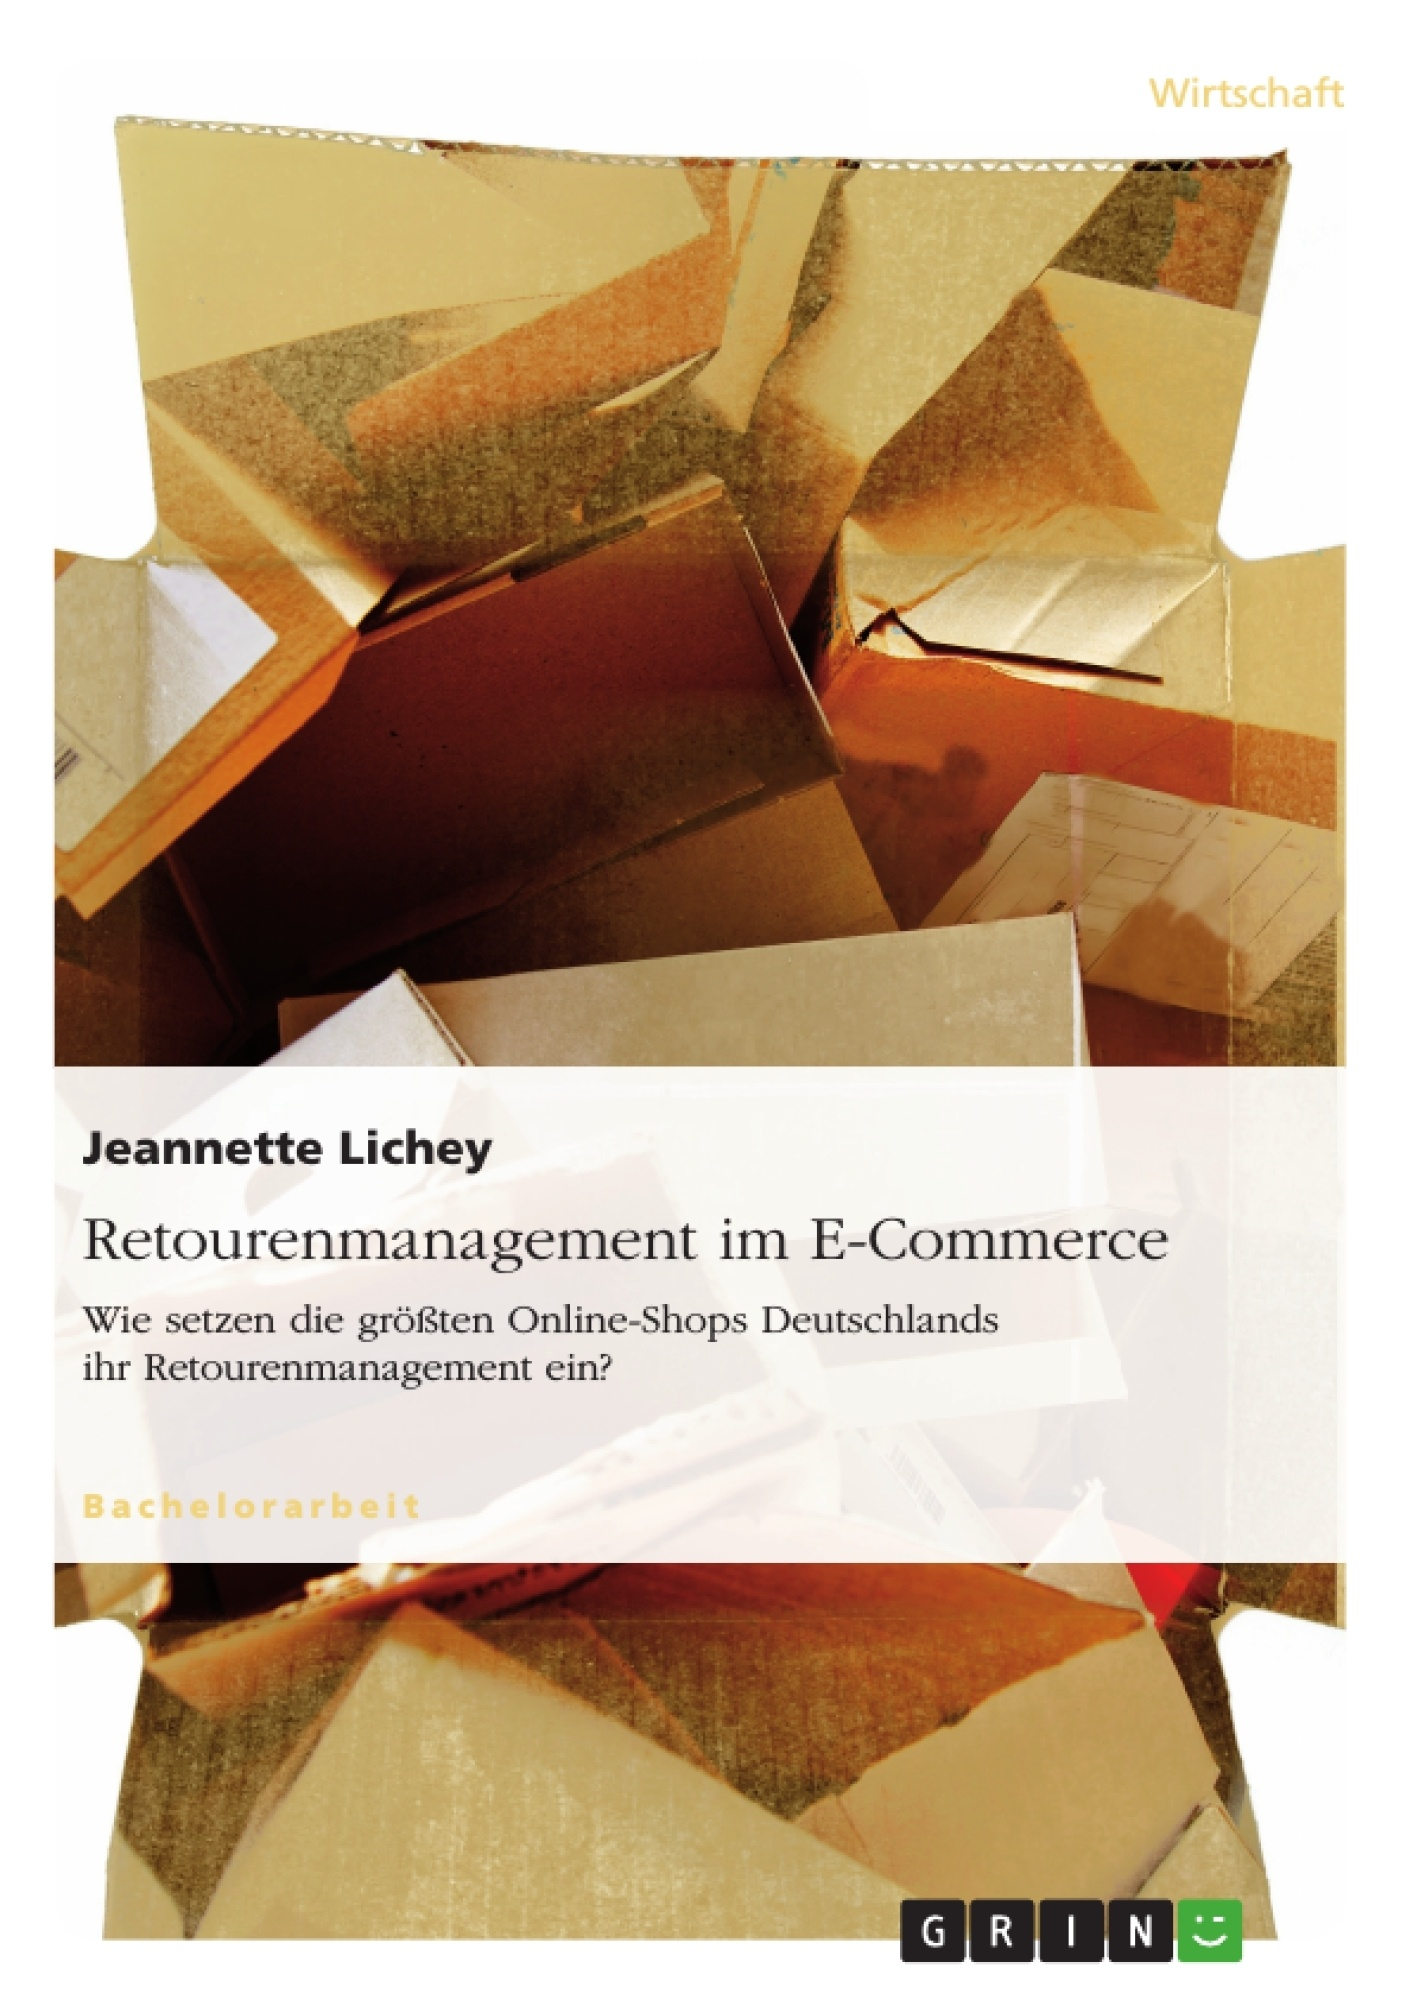 thesis of phd in commerce